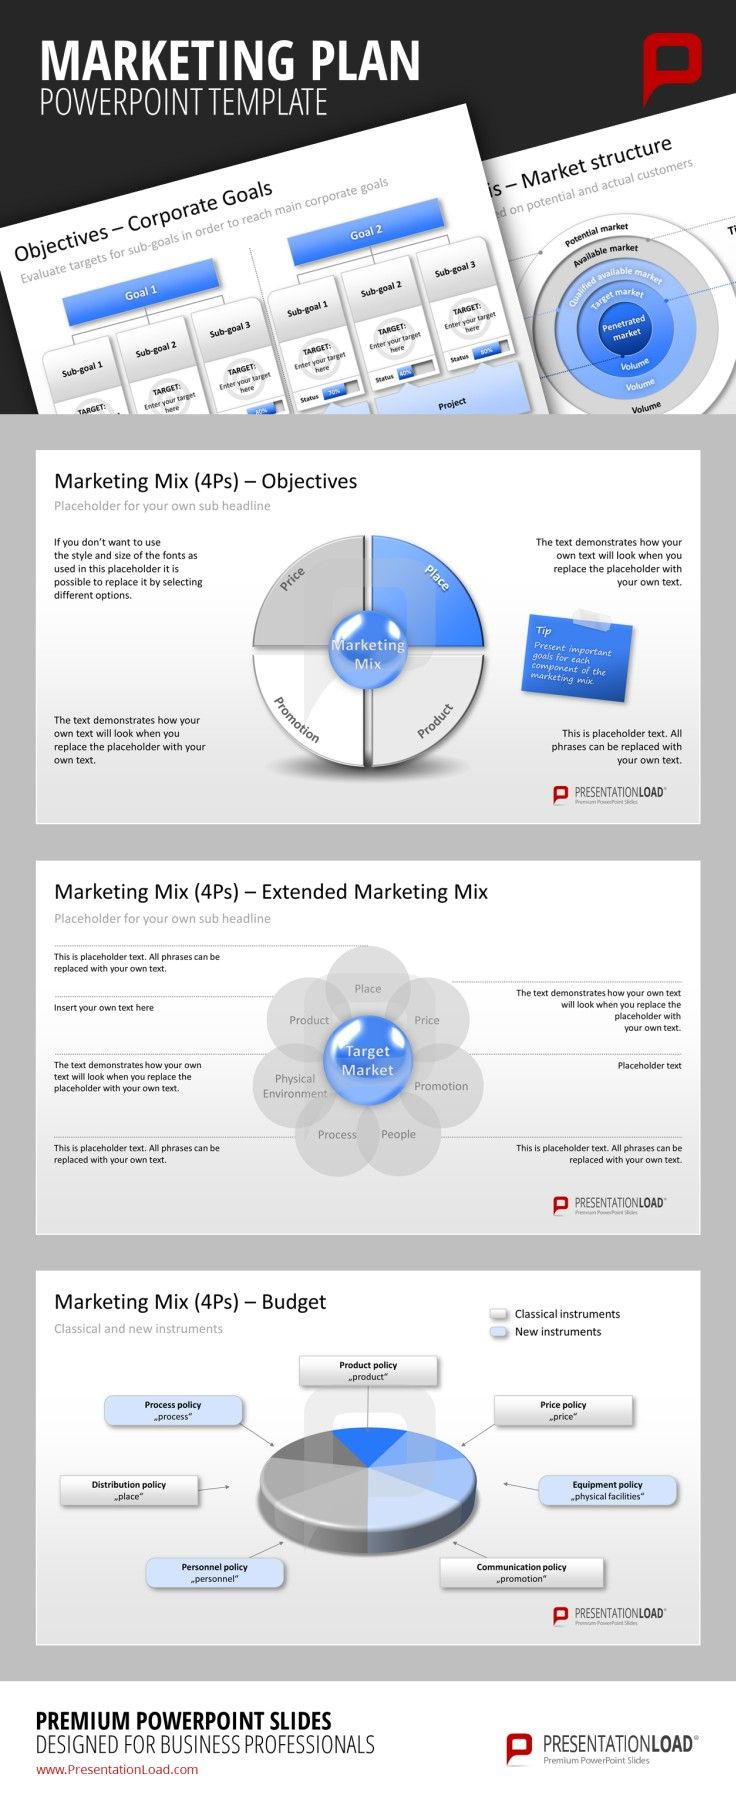 The Marketing Plan PowerPoint Templates contain specific